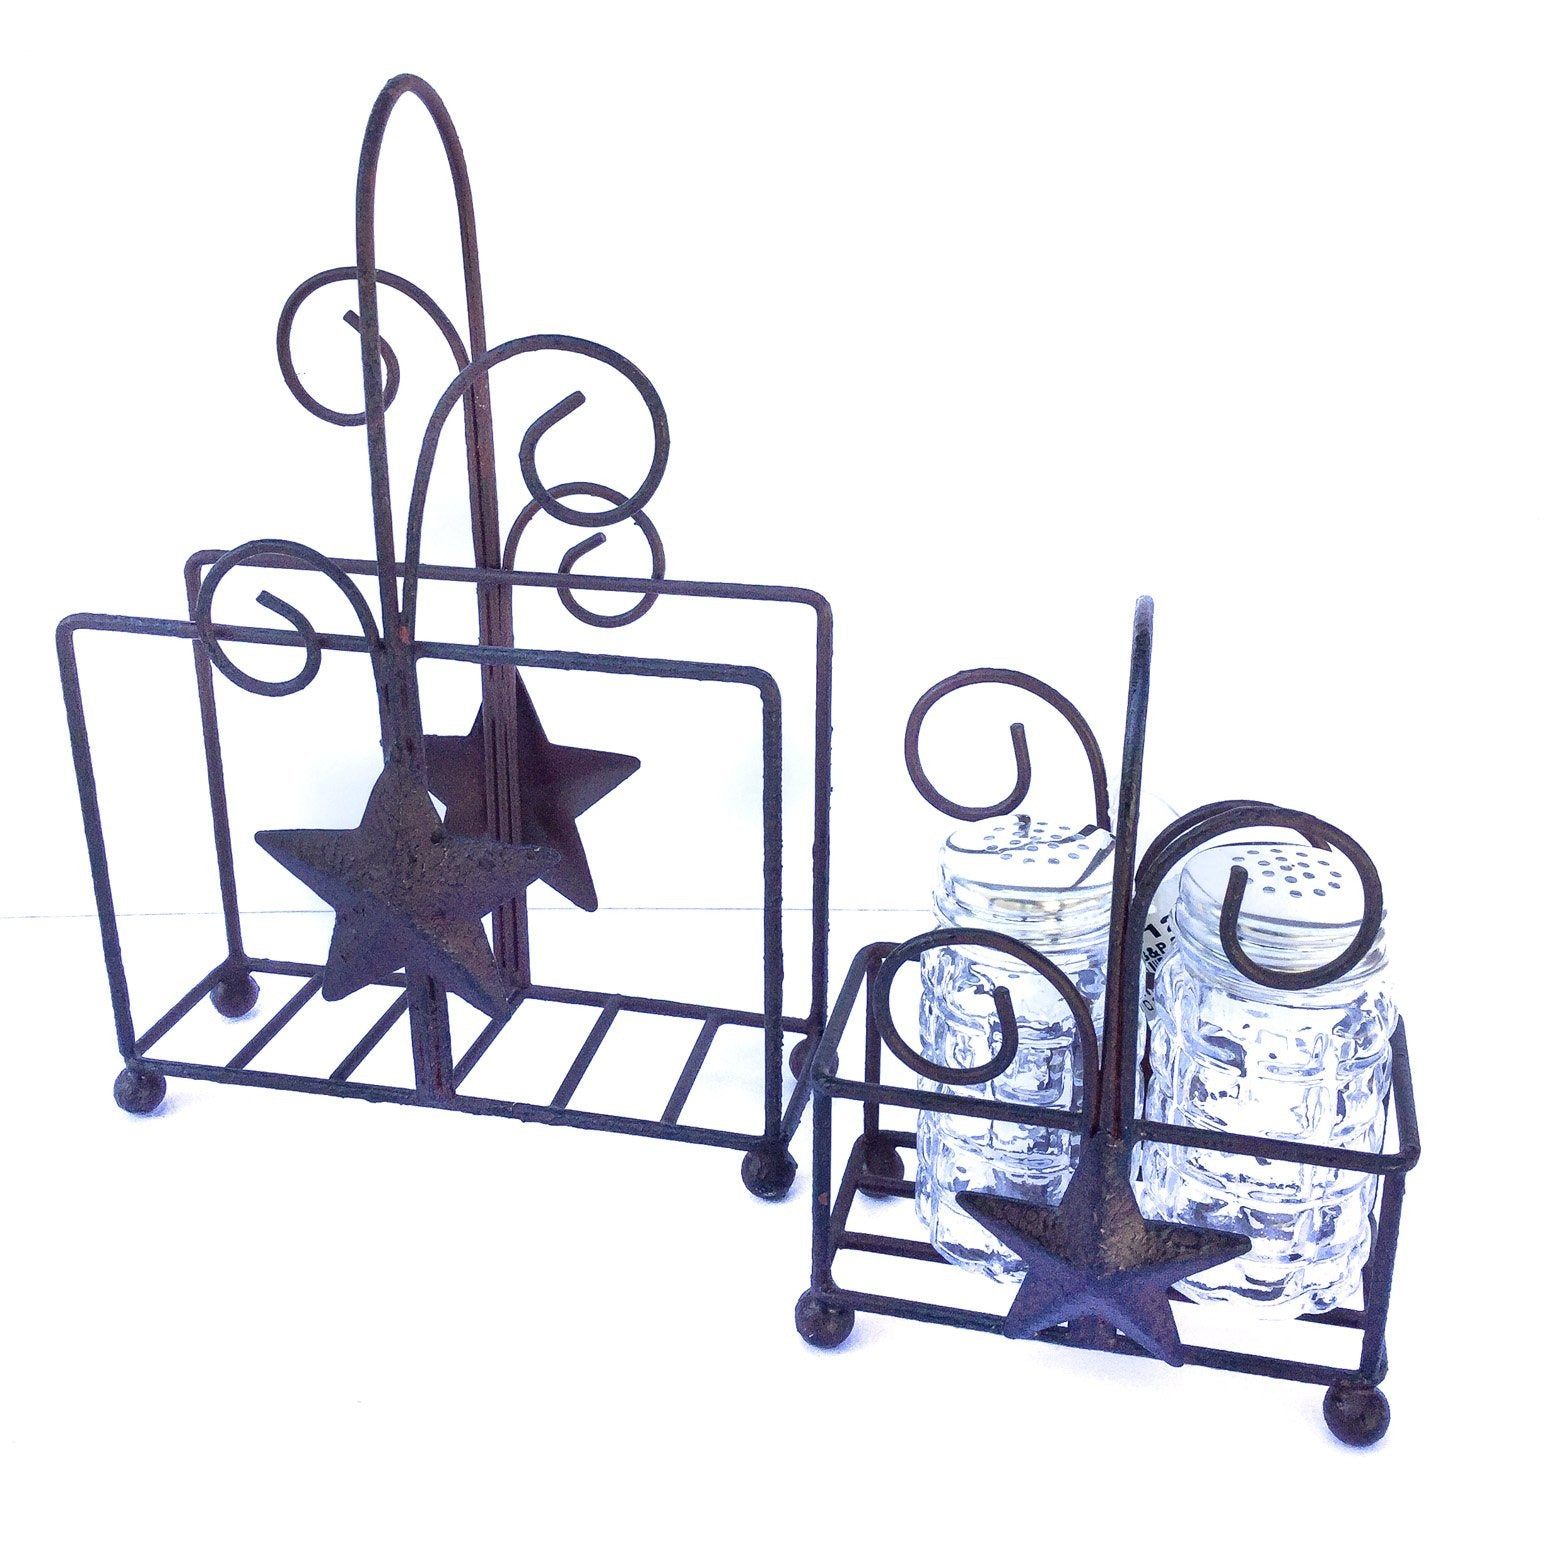 Rustic Star Napkin and Salt and Pepper Caddy